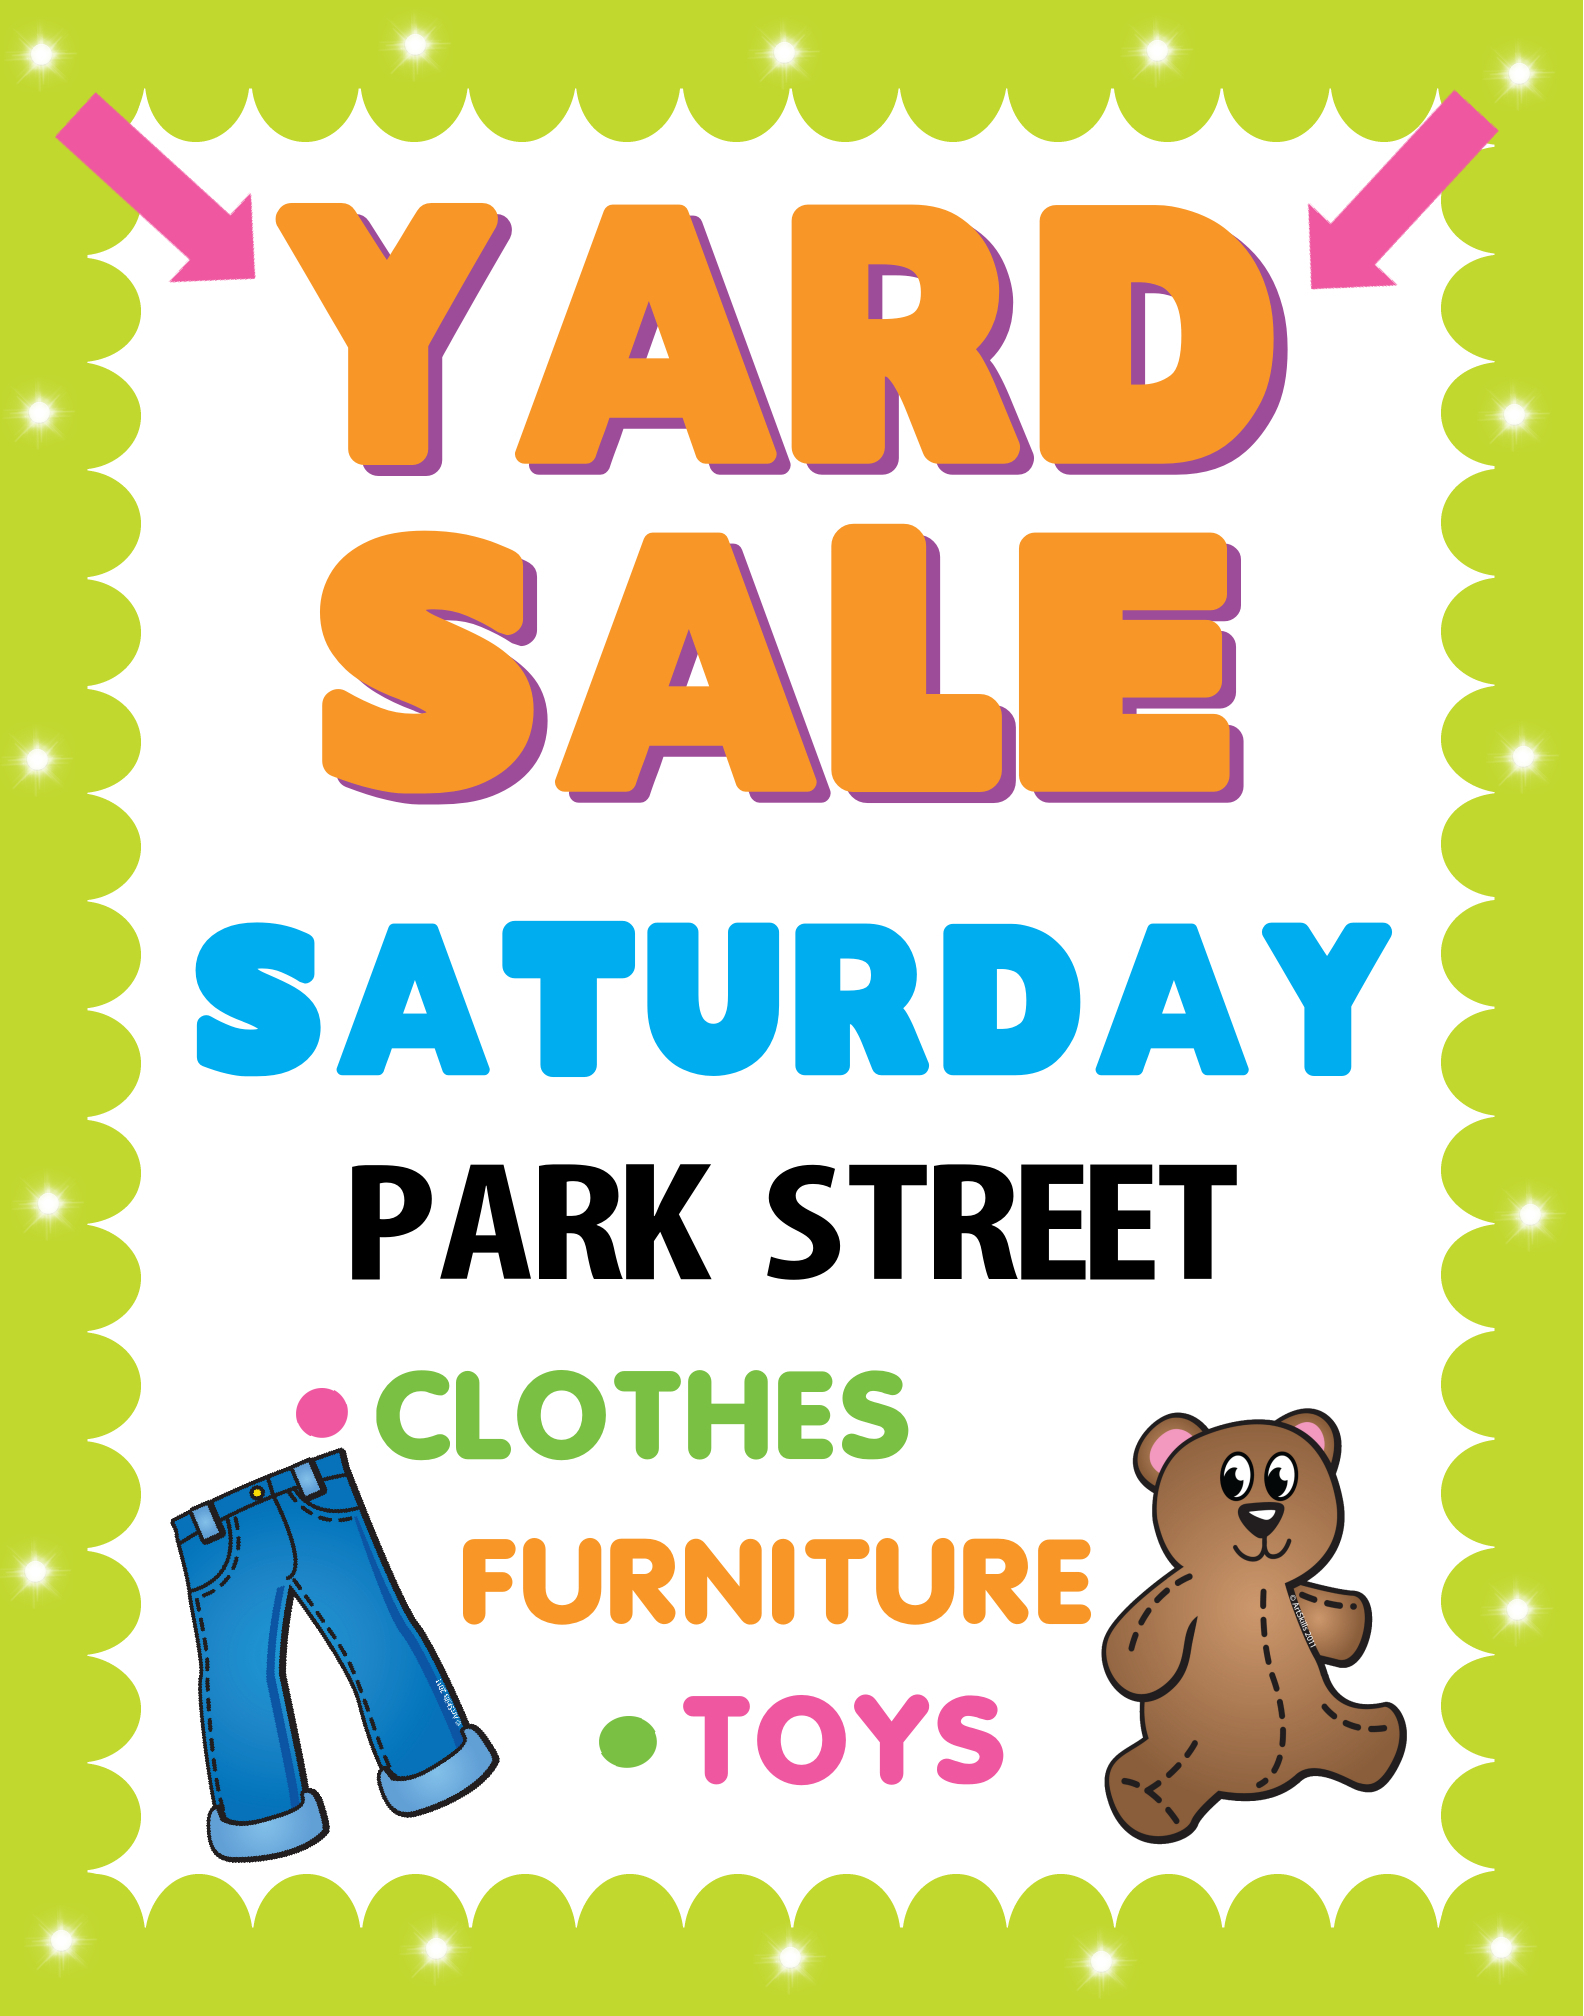 create a poster about yard sale